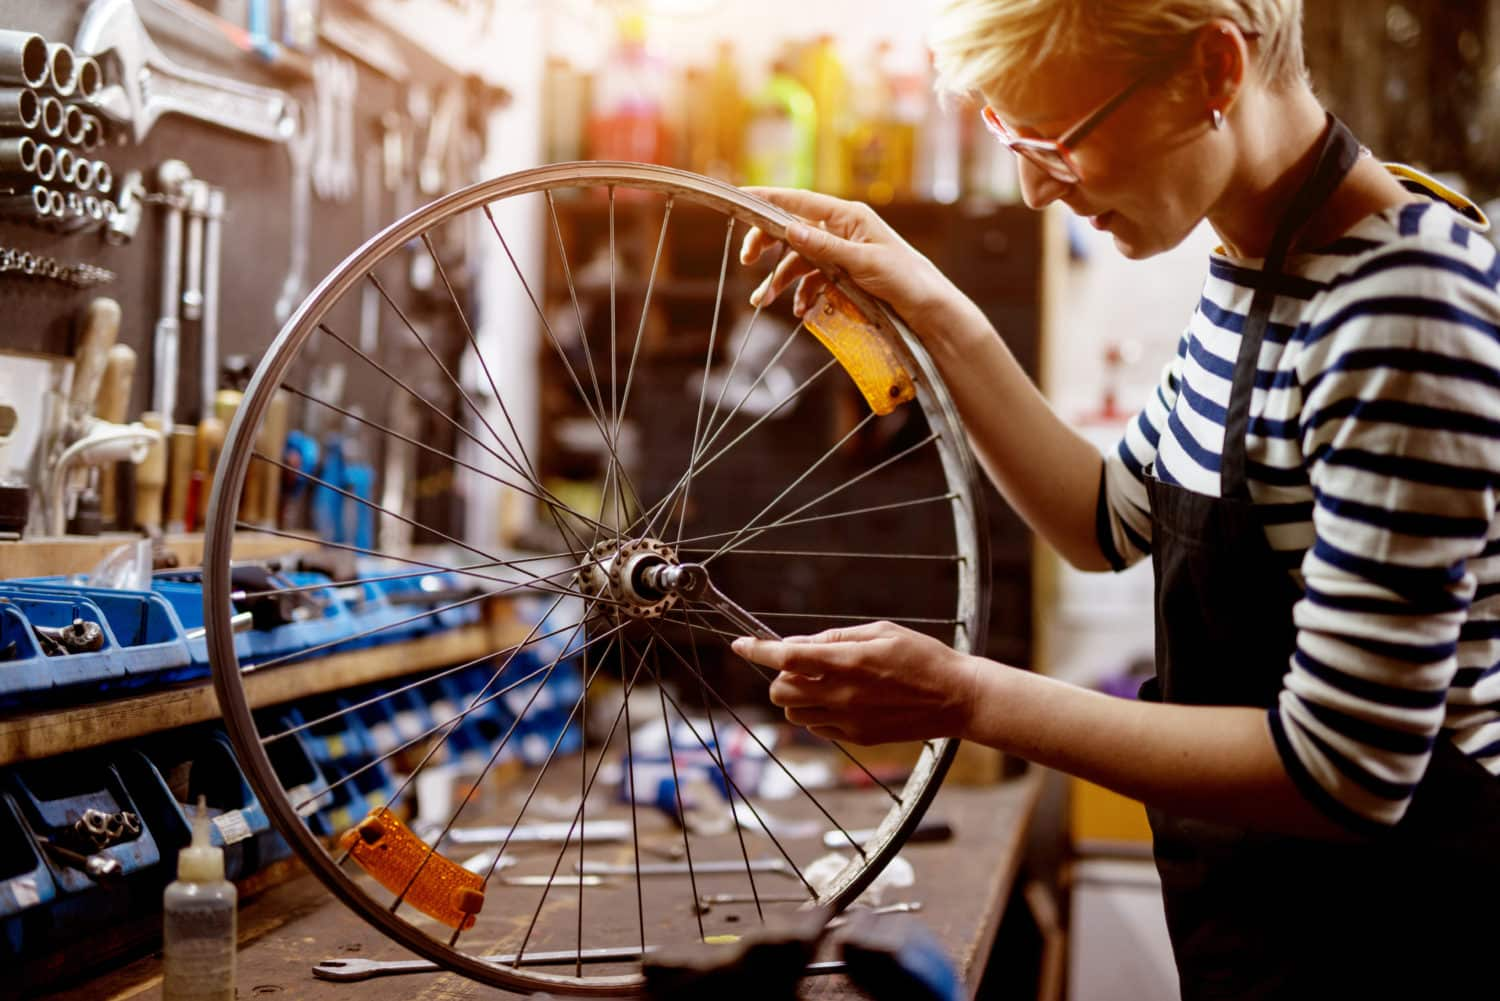 Beautiful focused woman checking bicycle tire with a wrench in the sunny garage. montage assemblage